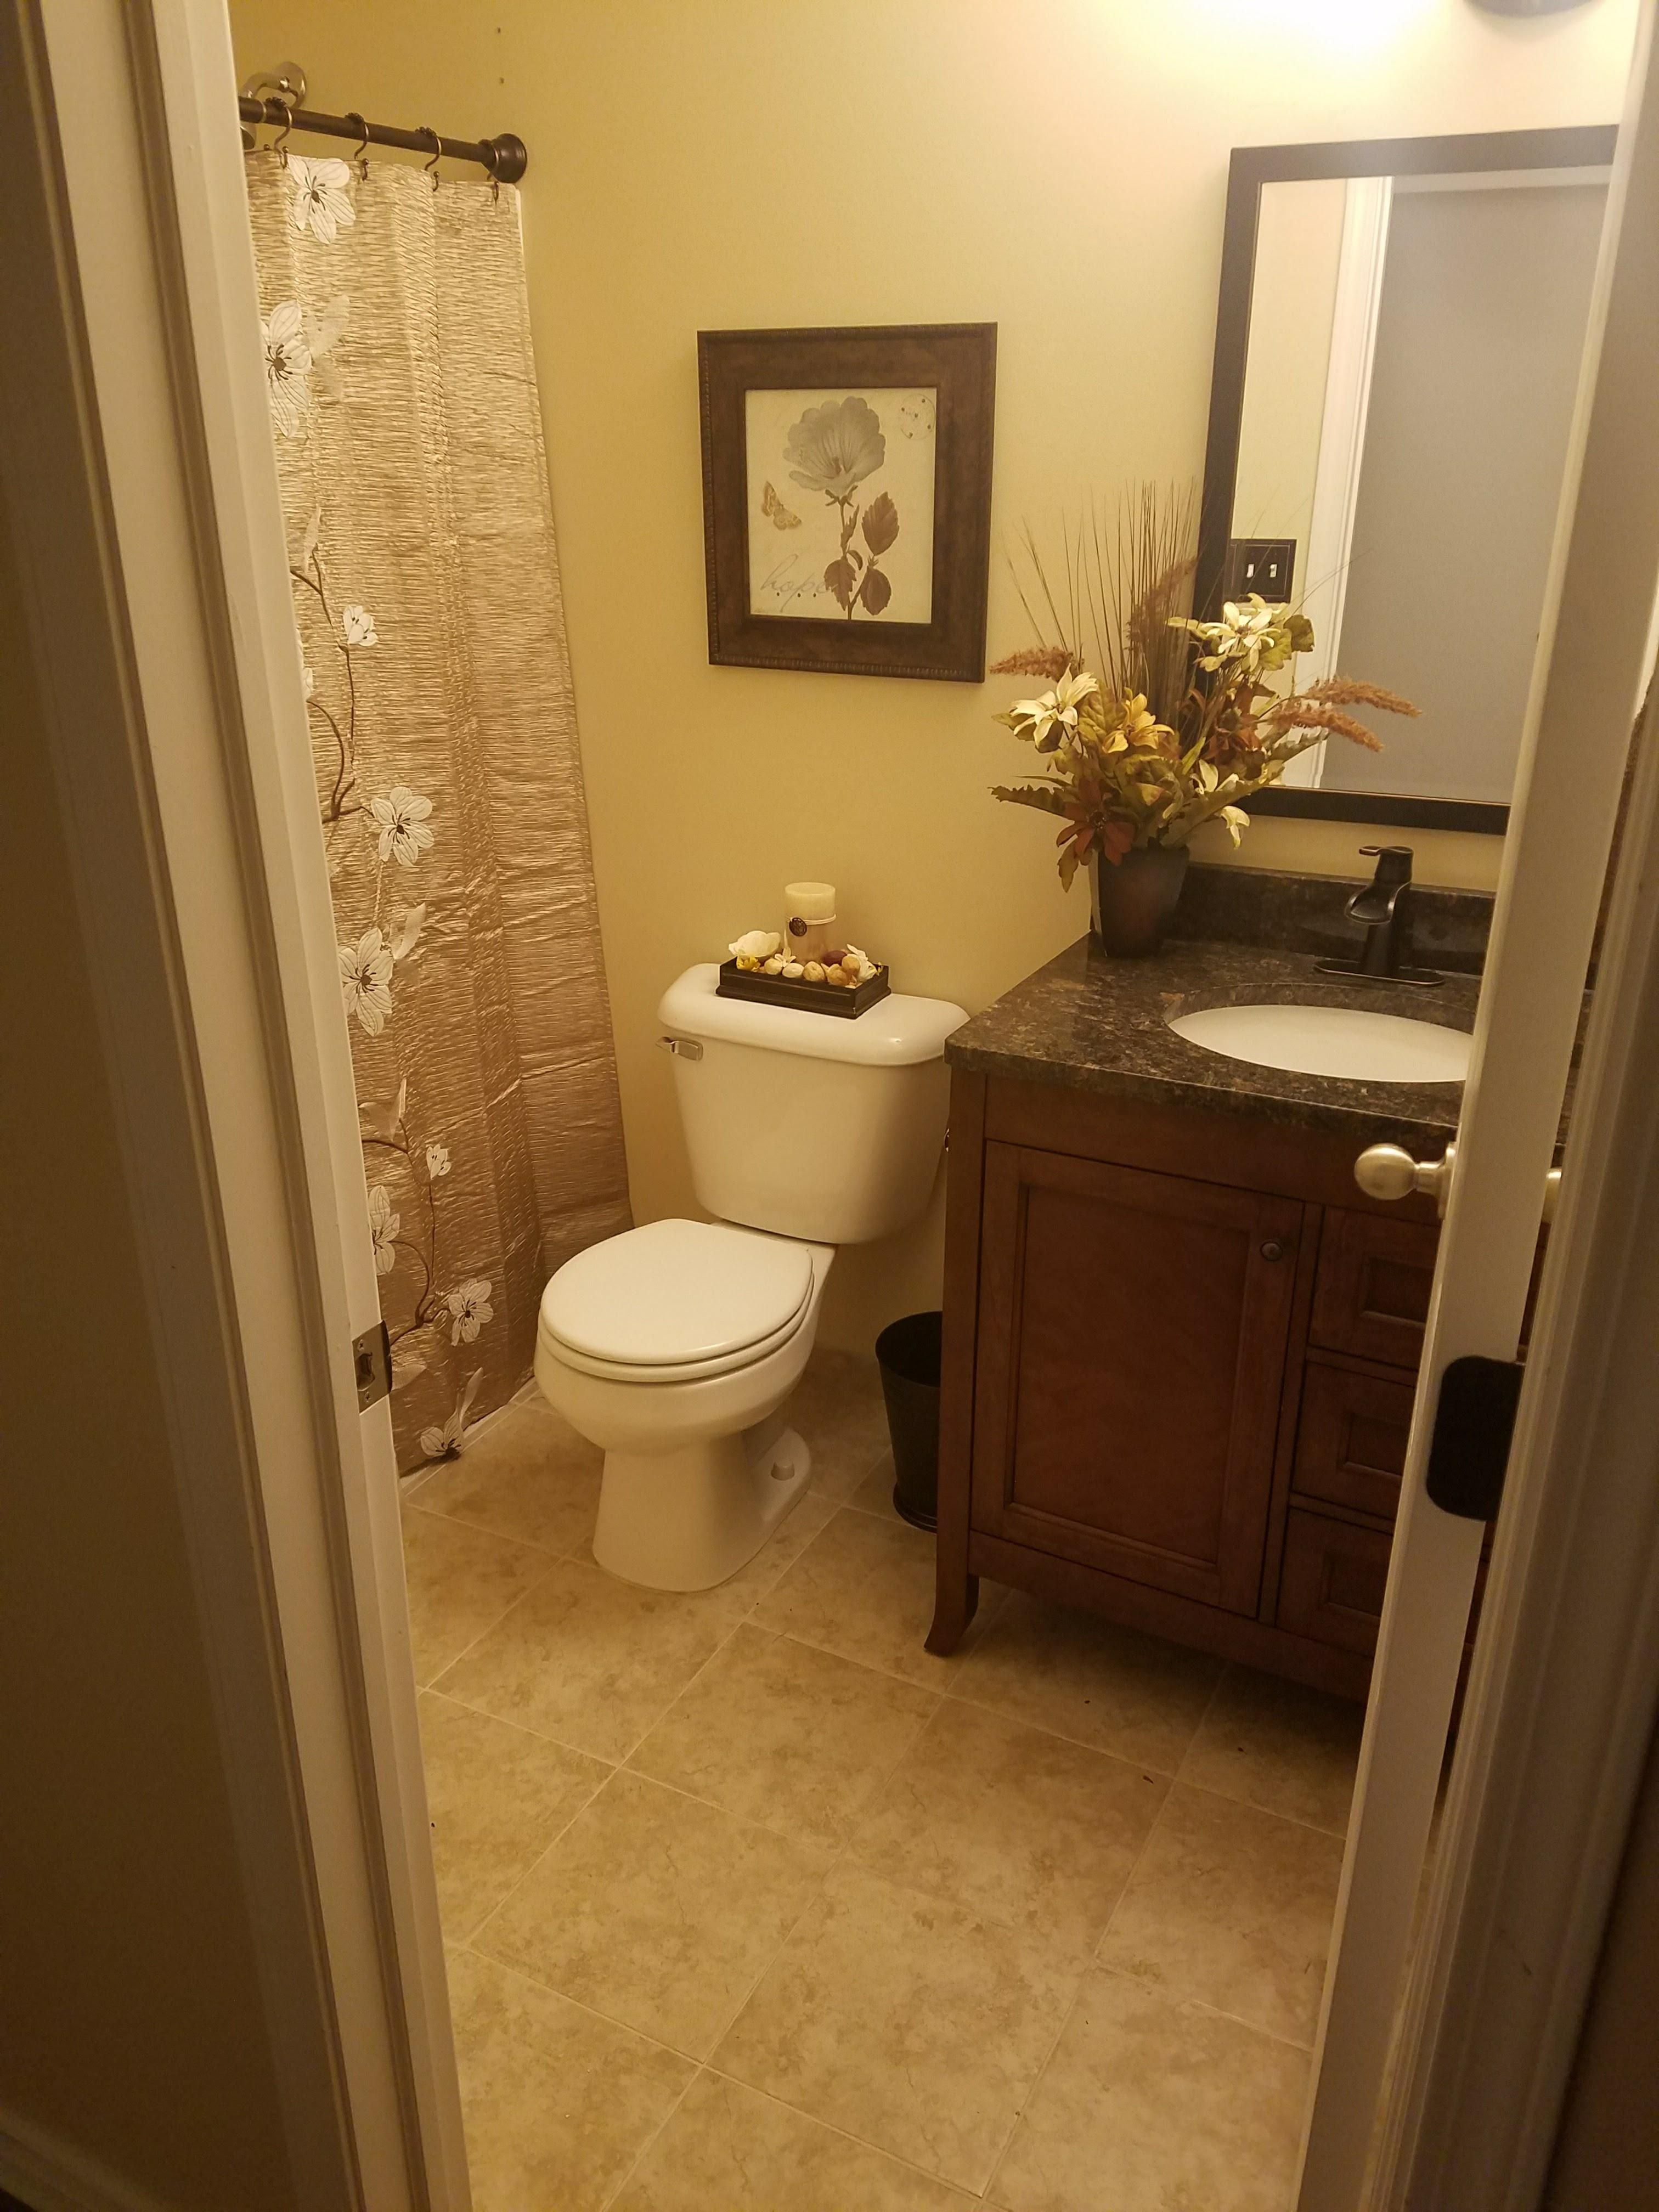 My First Bathroom Remodel This Took A Little Over Weeks Id - Tools for bathroom remodeling